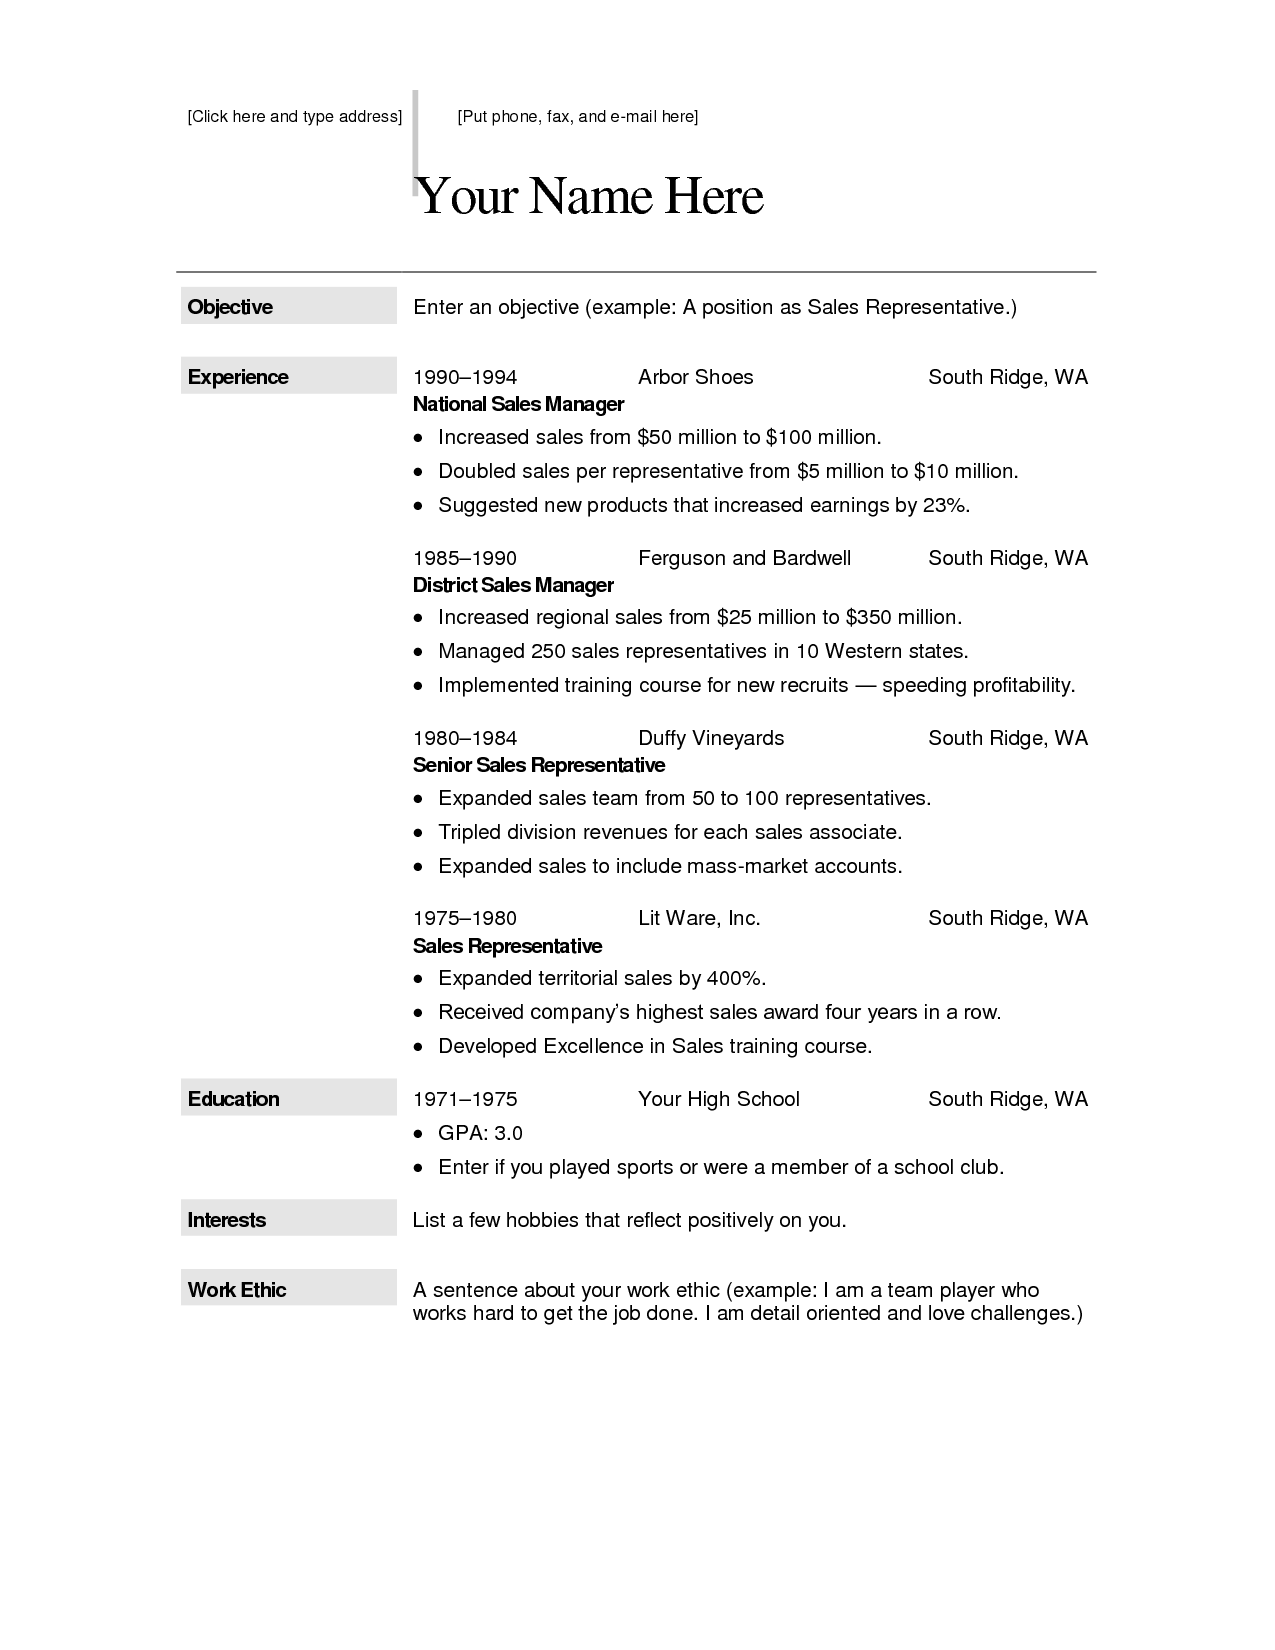 Free Resume Templates Microsoft Word 2010 Free Creative Resume Templates For Macfree Creative Resume